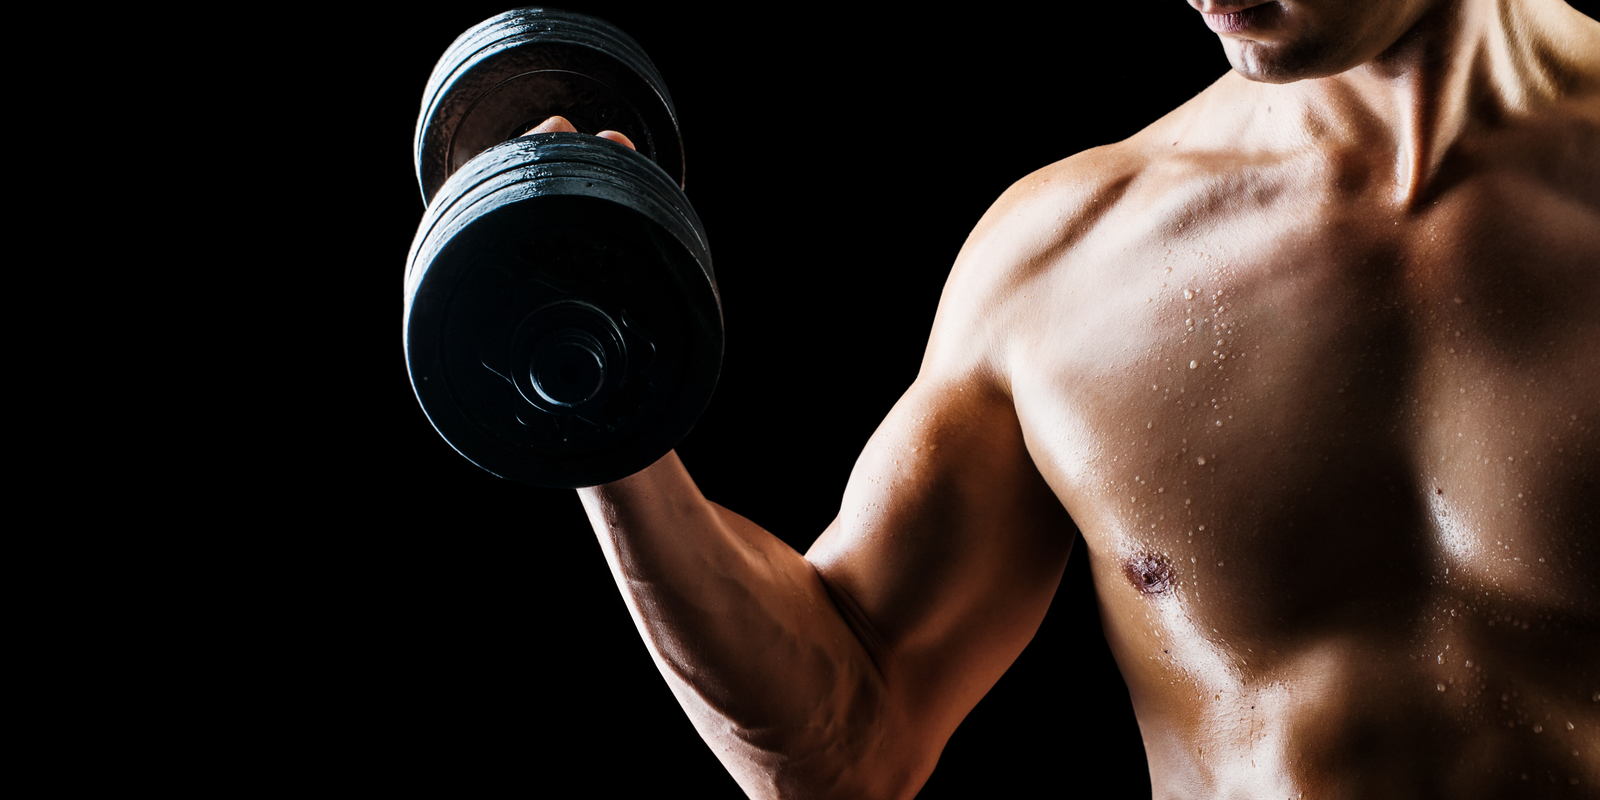 gay fitness build muscle bicep